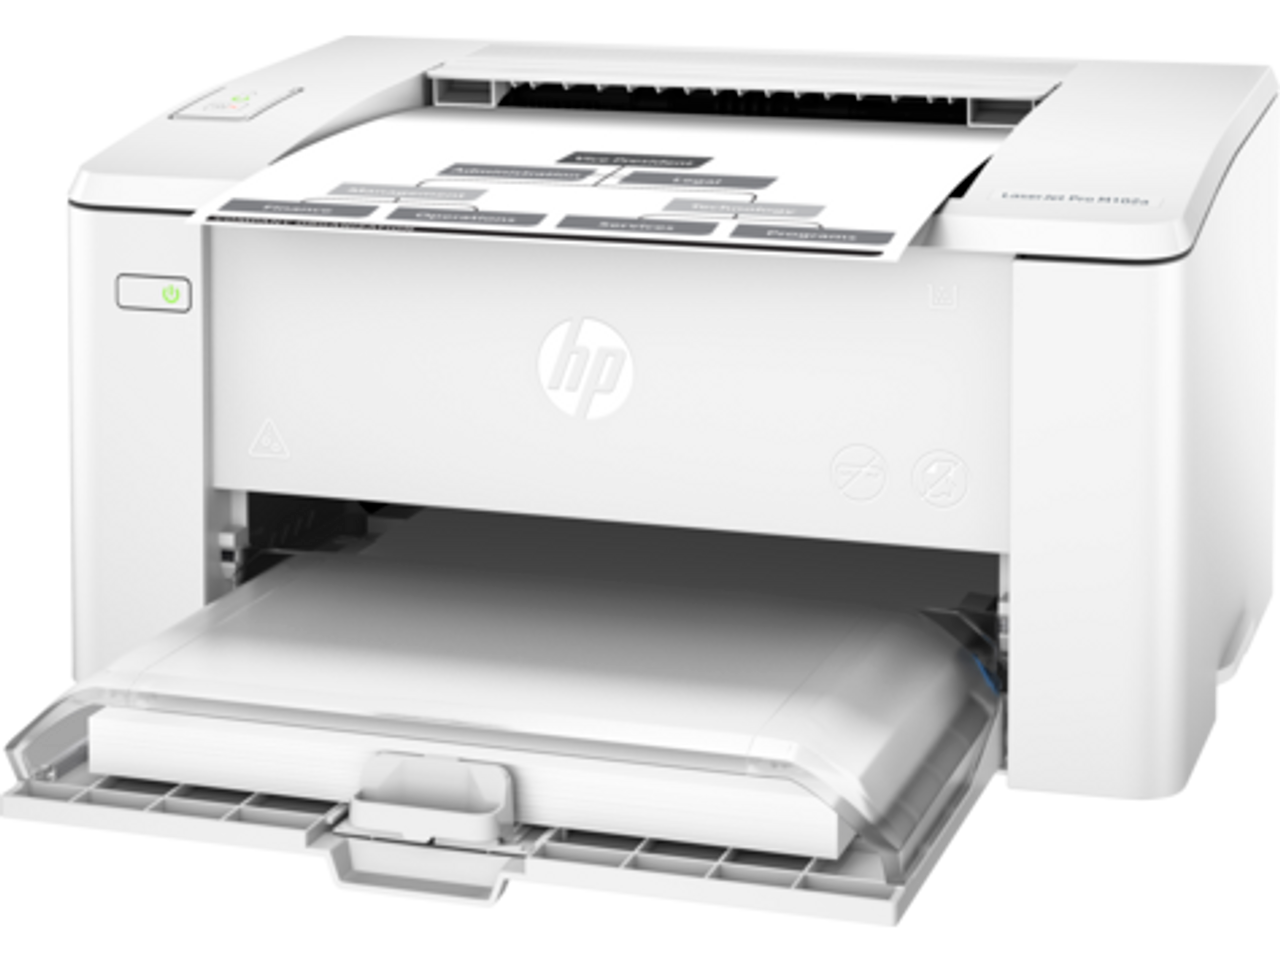 HP M102W WINDOWS 8.1 DRIVERS DOWNLOAD